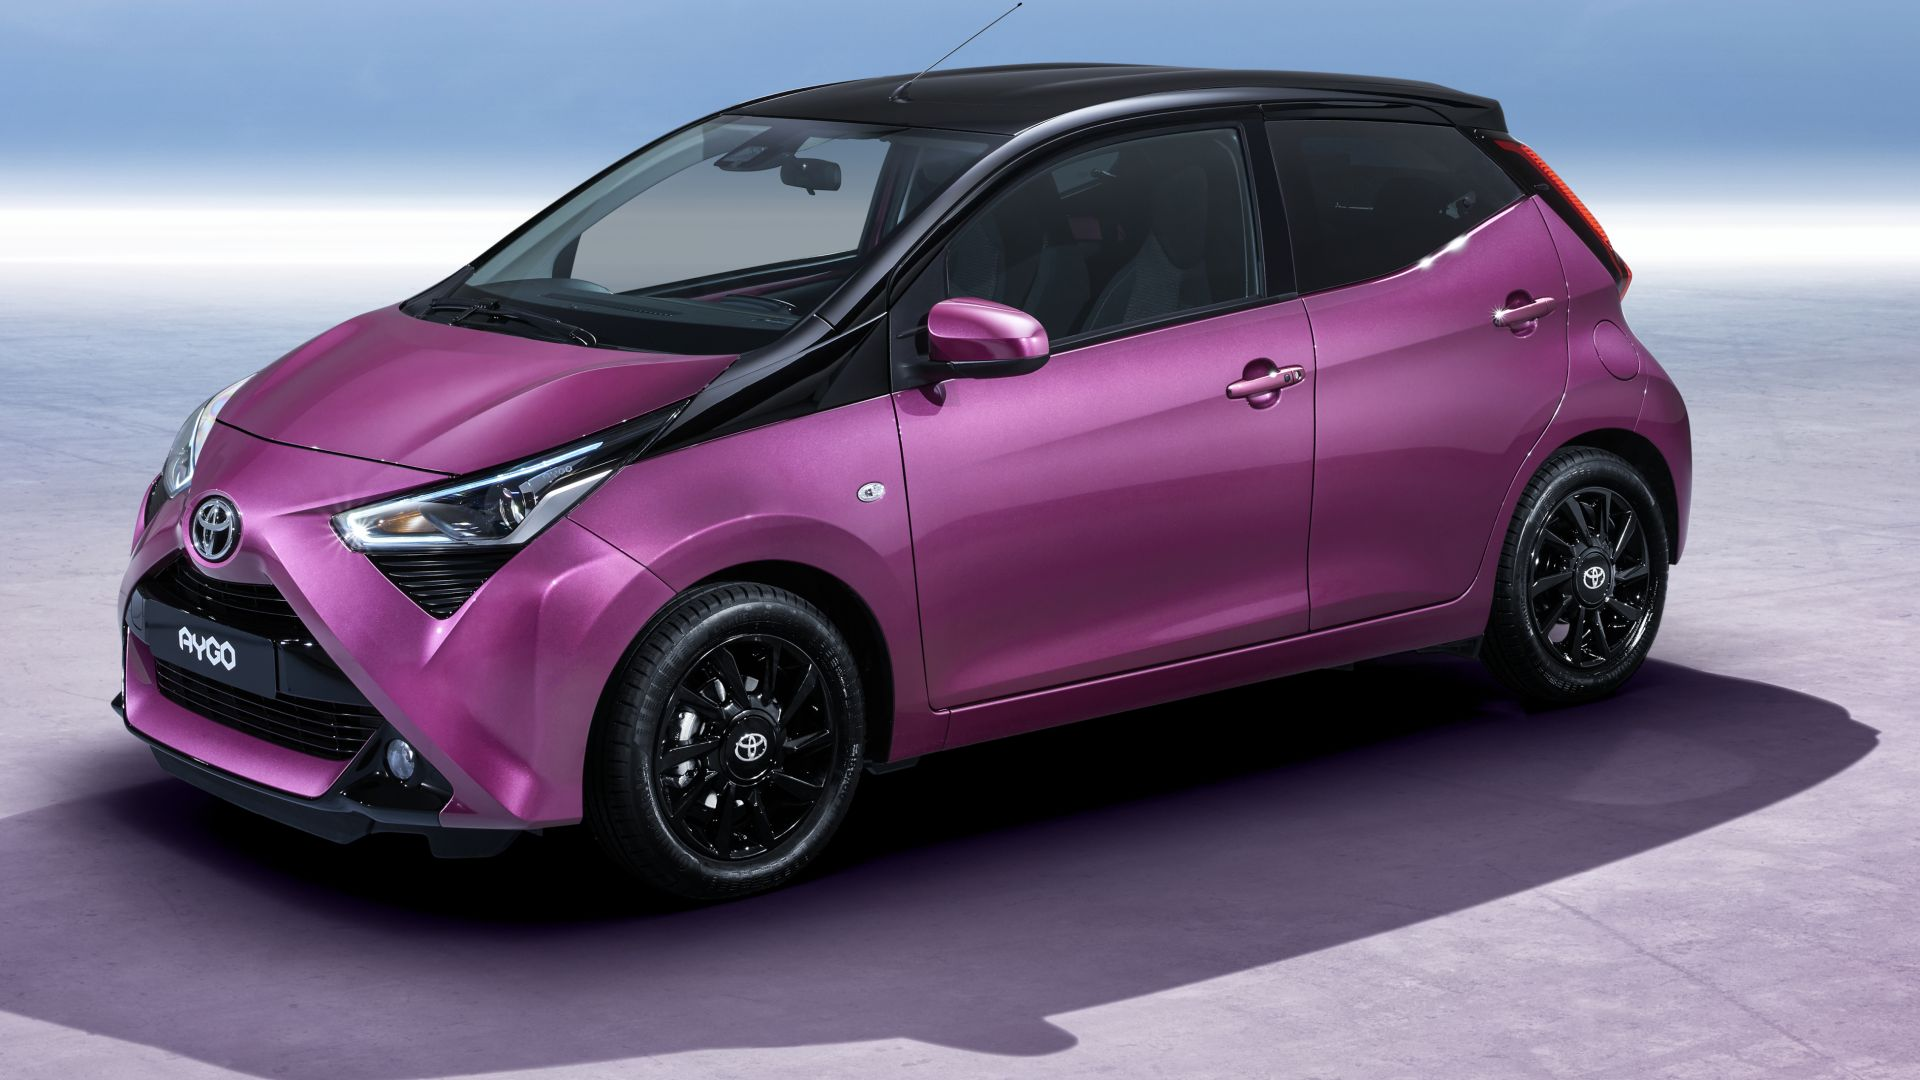 wallpaper toyota aygo geneva motor show 2018 4k cars bikes 17685. Black Bedroom Furniture Sets. Home Design Ideas